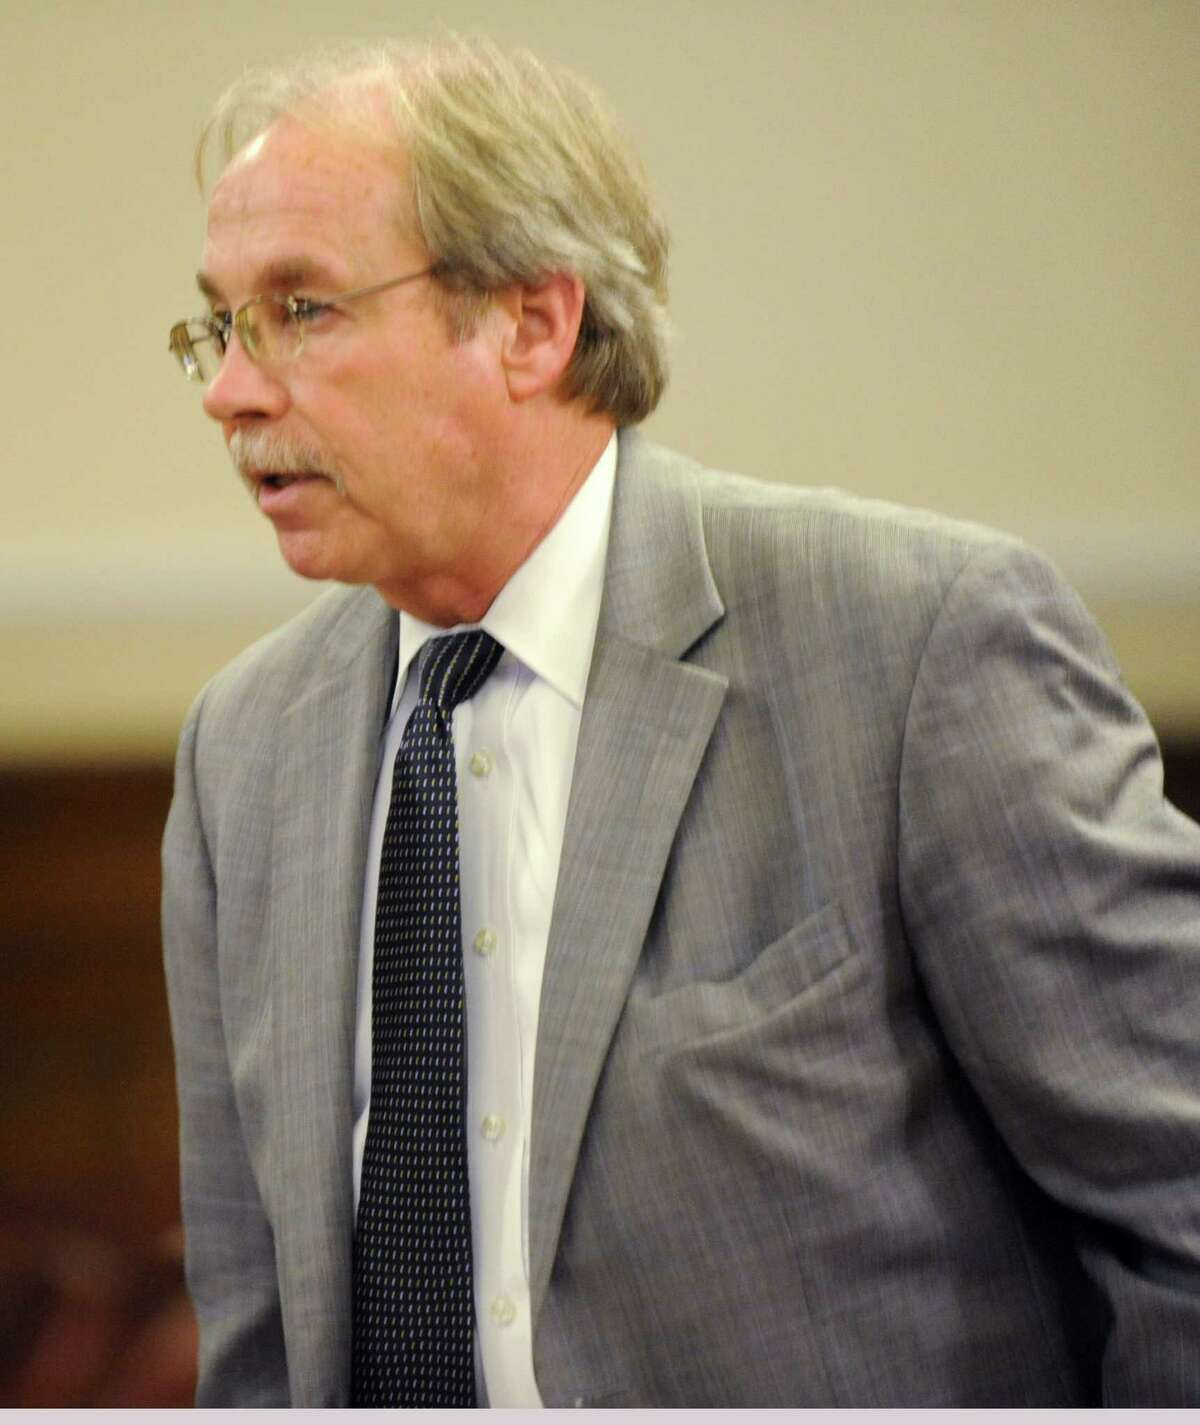 First Assistant District Attorney Arthur Glass speaks in the case of Robert Hayden of Troy in a courtroom in the Rensselaer County Court House on Monday, Oct 1, 2012 in Troy, N.Y. Hayden told police he performed CPR on a toddler for two hours after he allegedly put his hand over the crying boy's mouth and he stopped breathing. Hayden is charged with murder and manslaughter. (Lori Van Buren / Times Union)